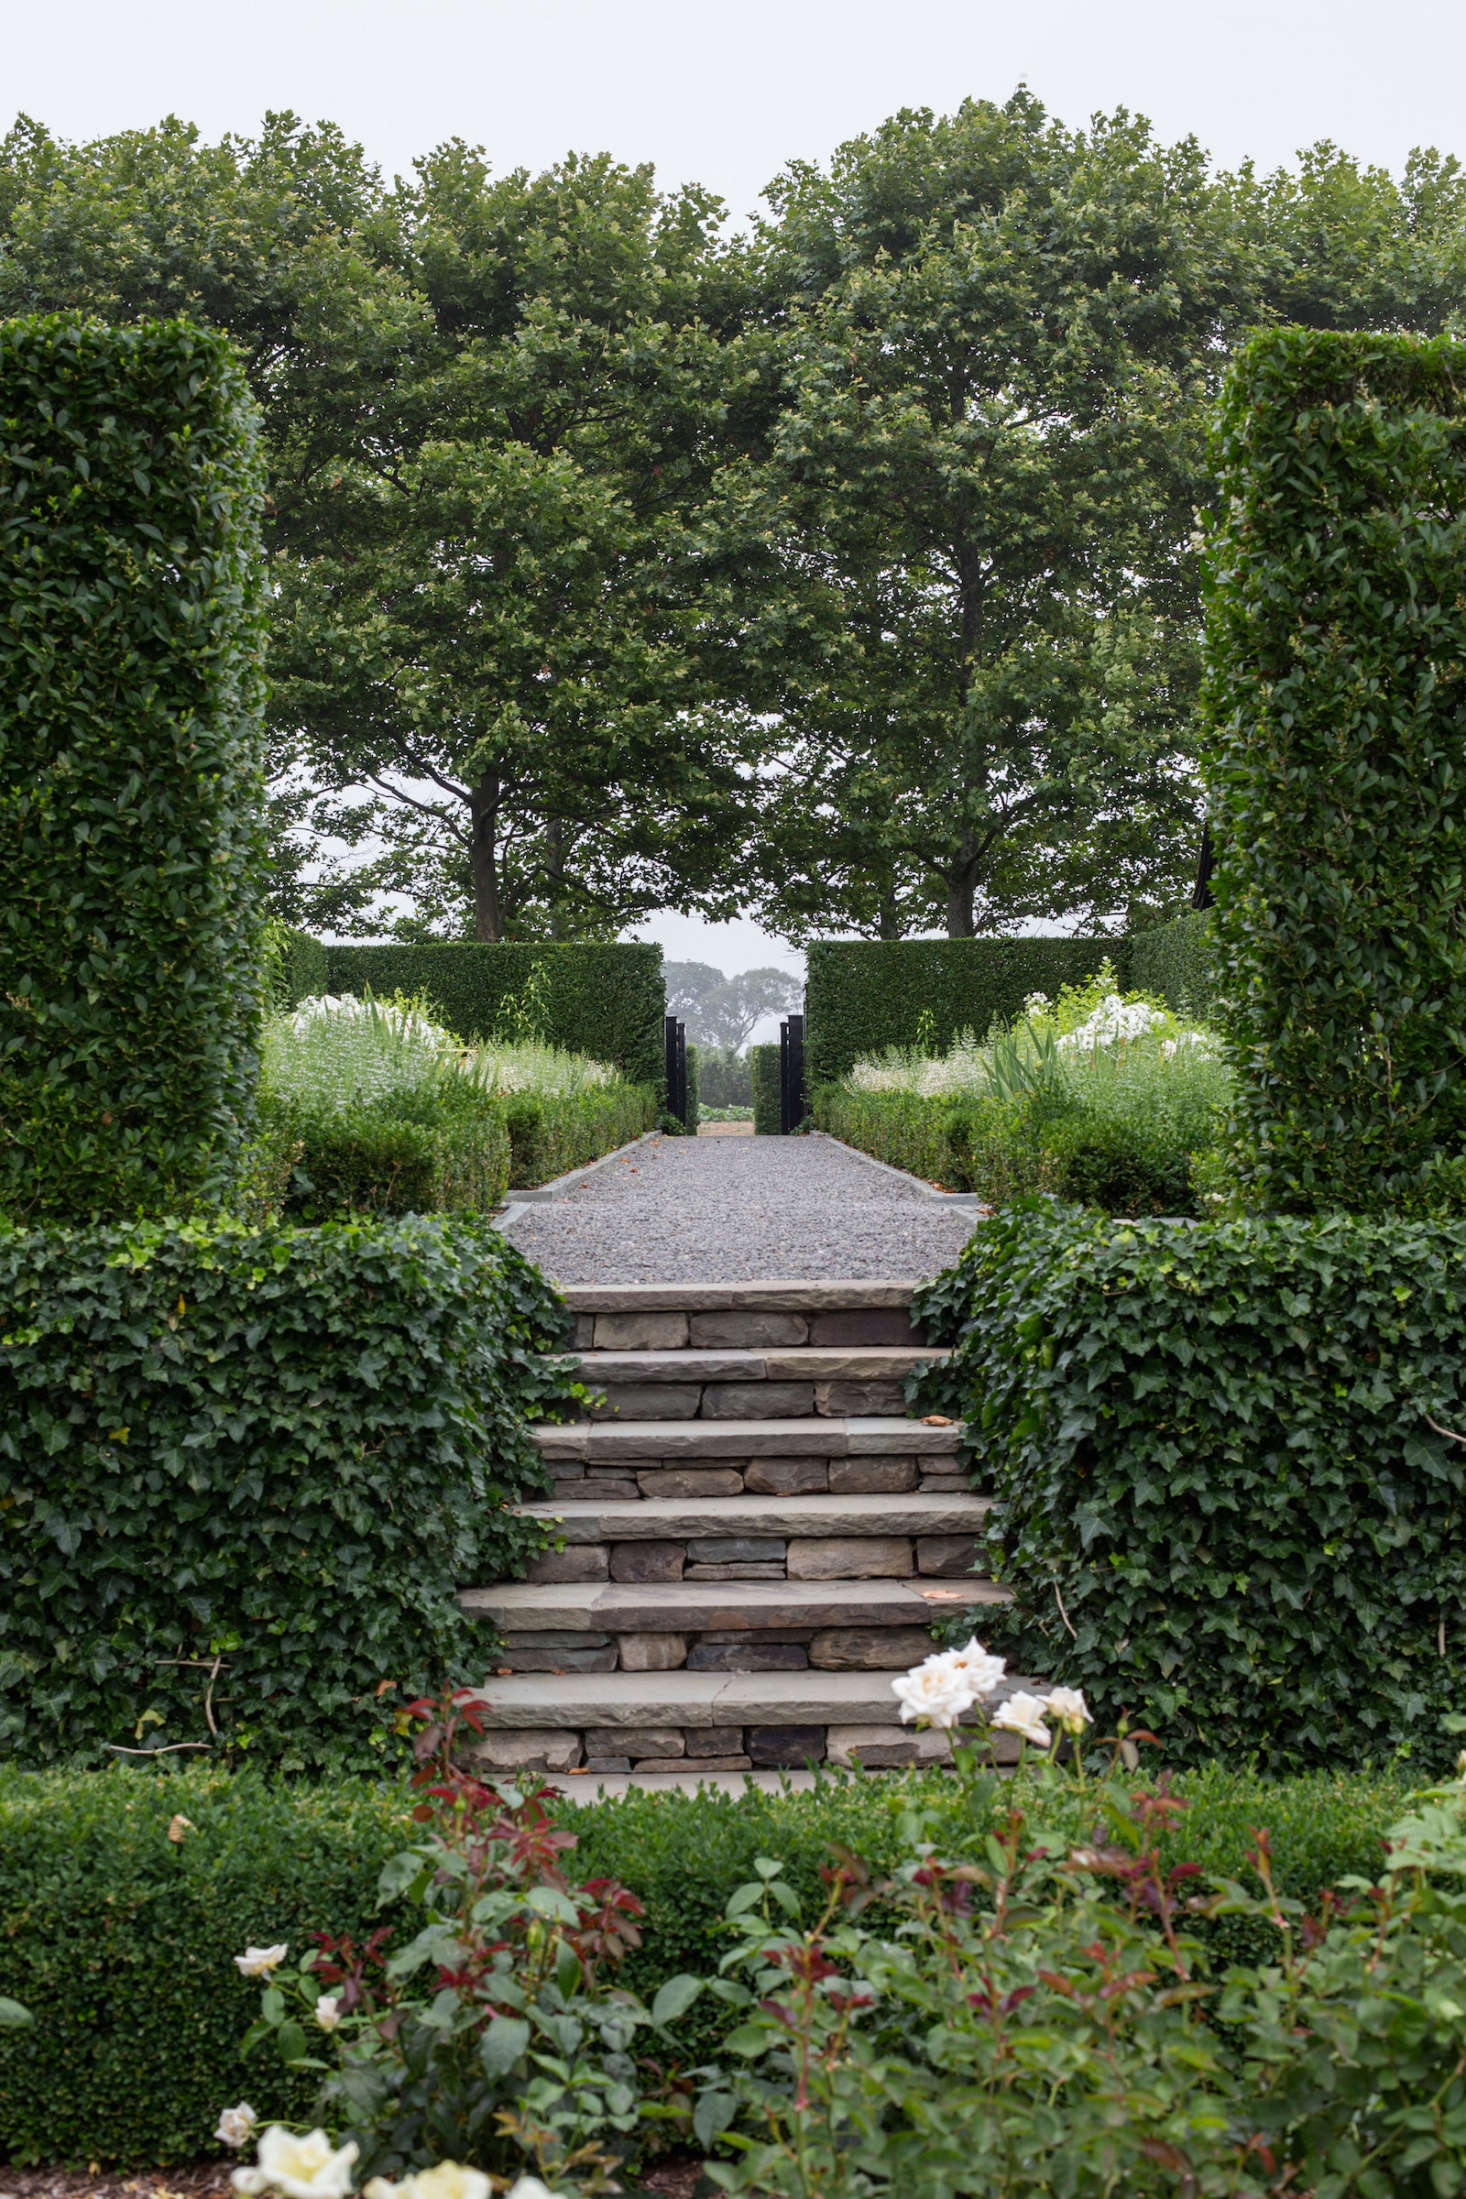 Stairway gravel paths hedges Watermill NY garden Quincy Hammond